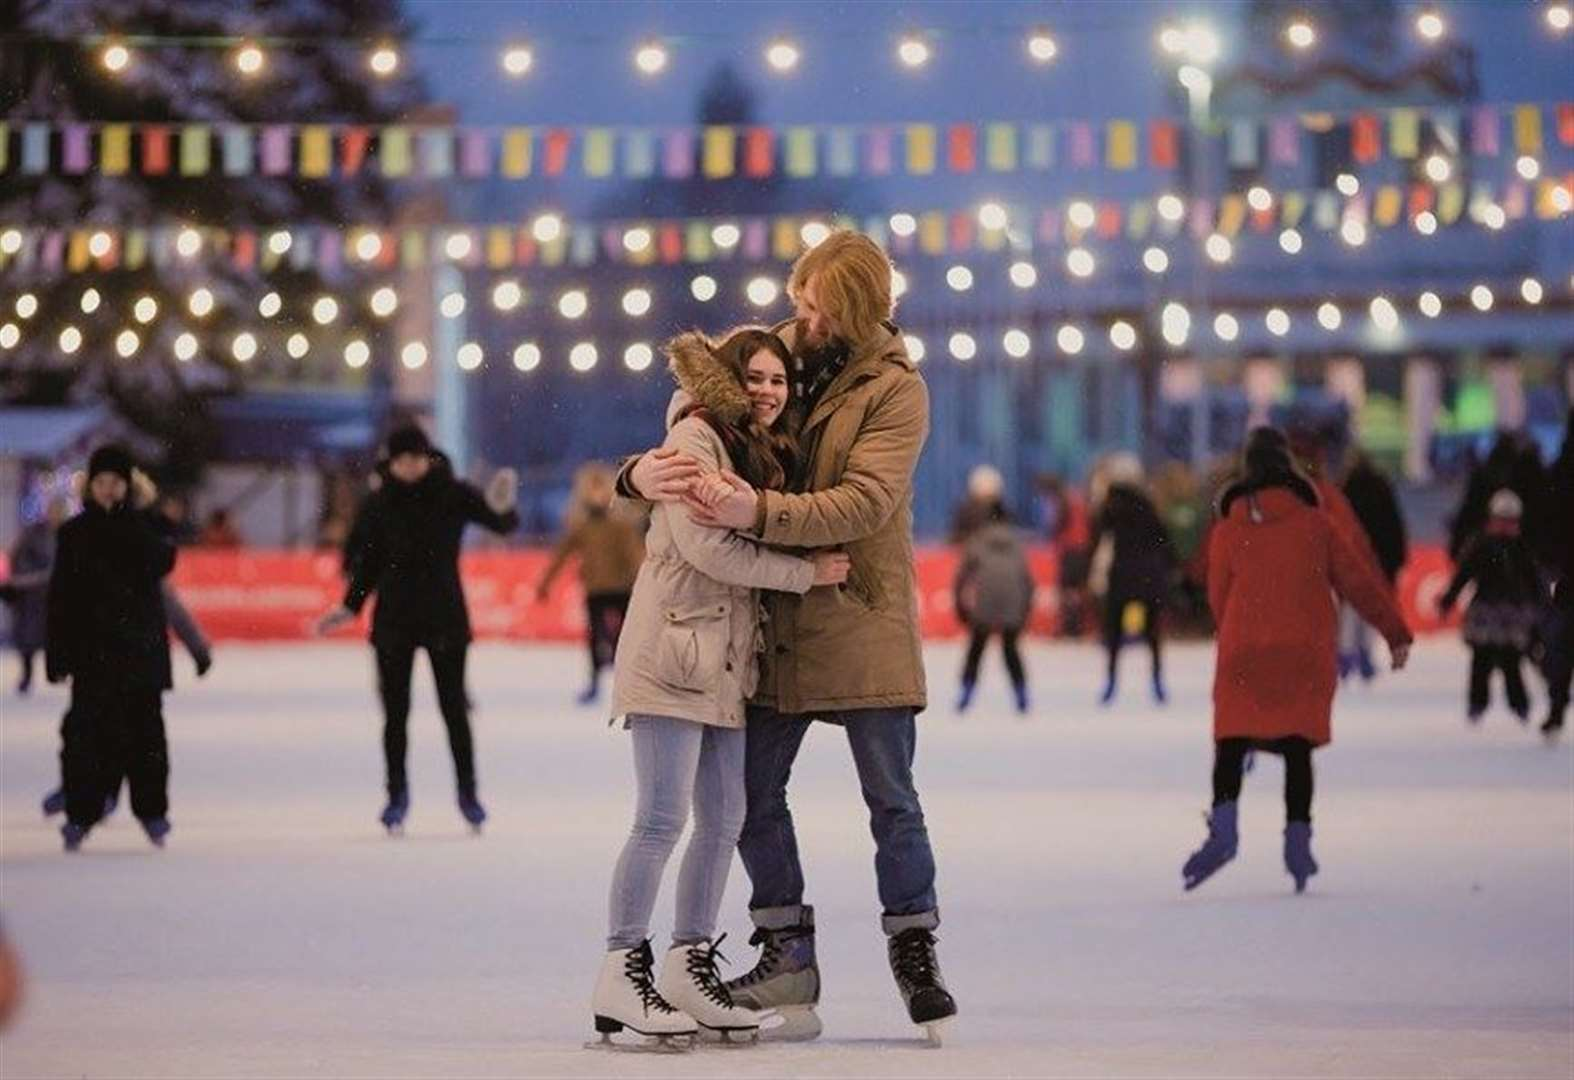 Ice skating rink confirmed for Christmas